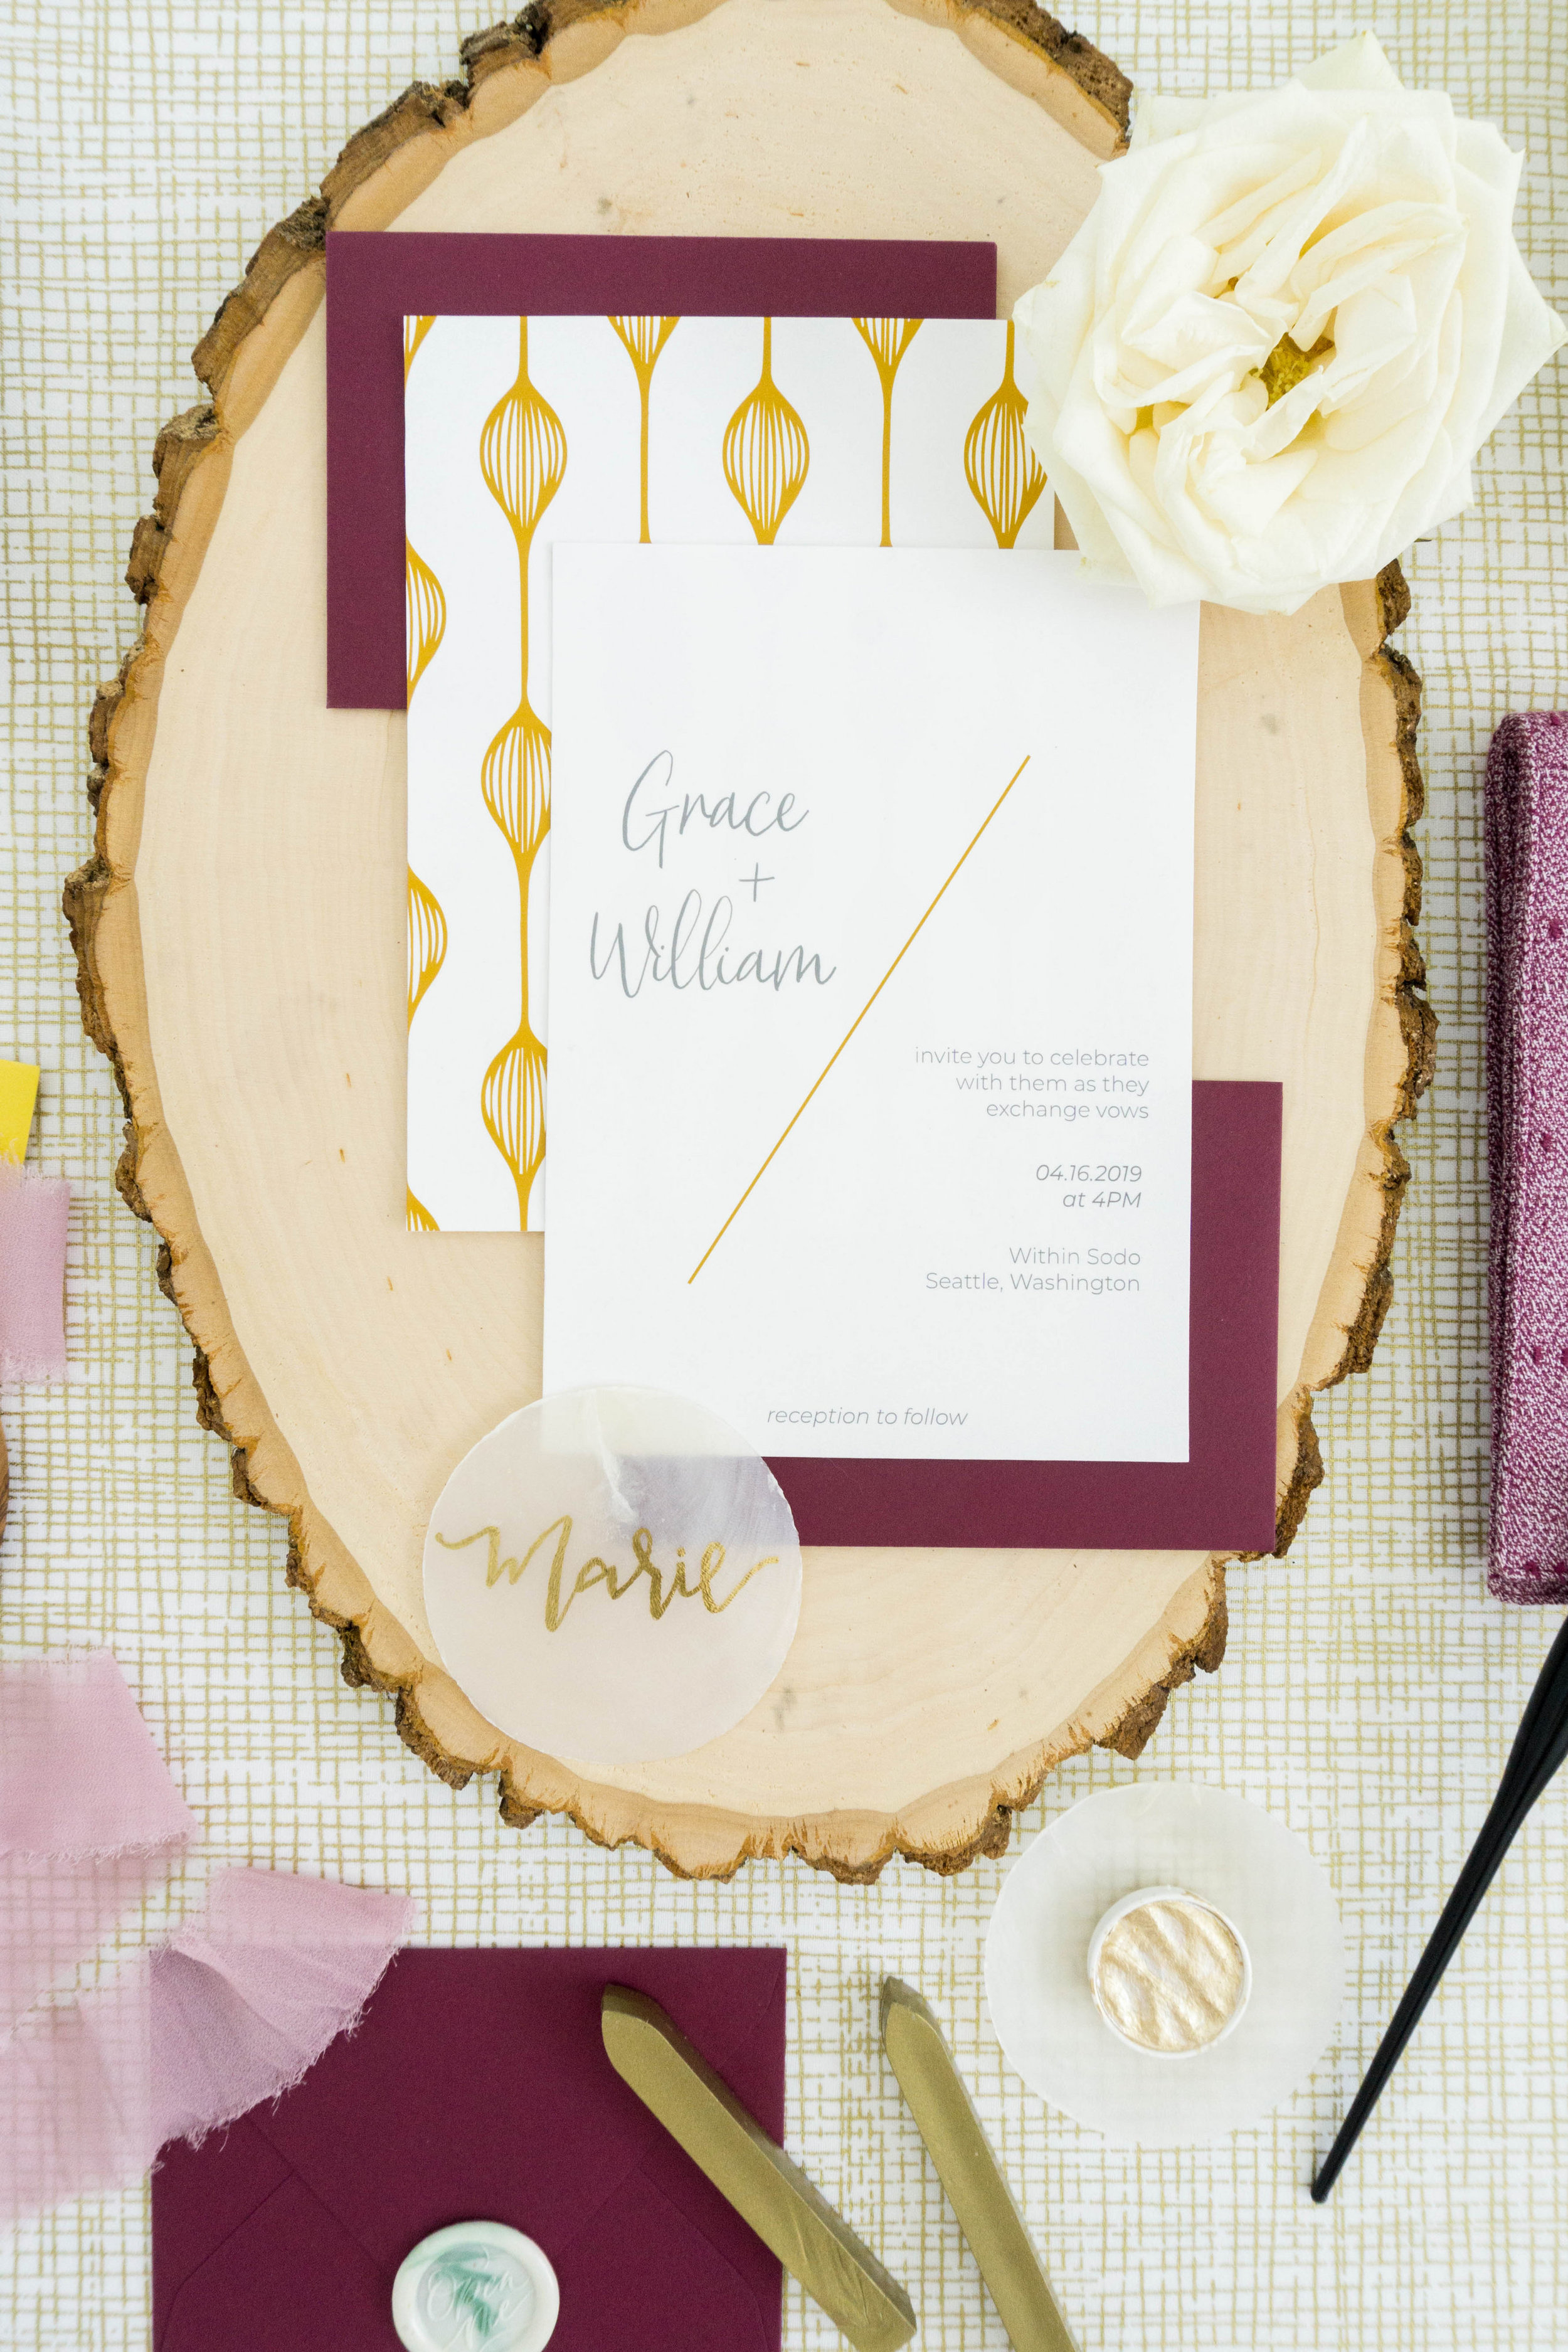 love-fern-design-studio-custom-wedding-invitations-for-the-modern-couple-modern-calligraphy-in-seattle-washington-custom-wedding-stationery-maroon-gold-trendy